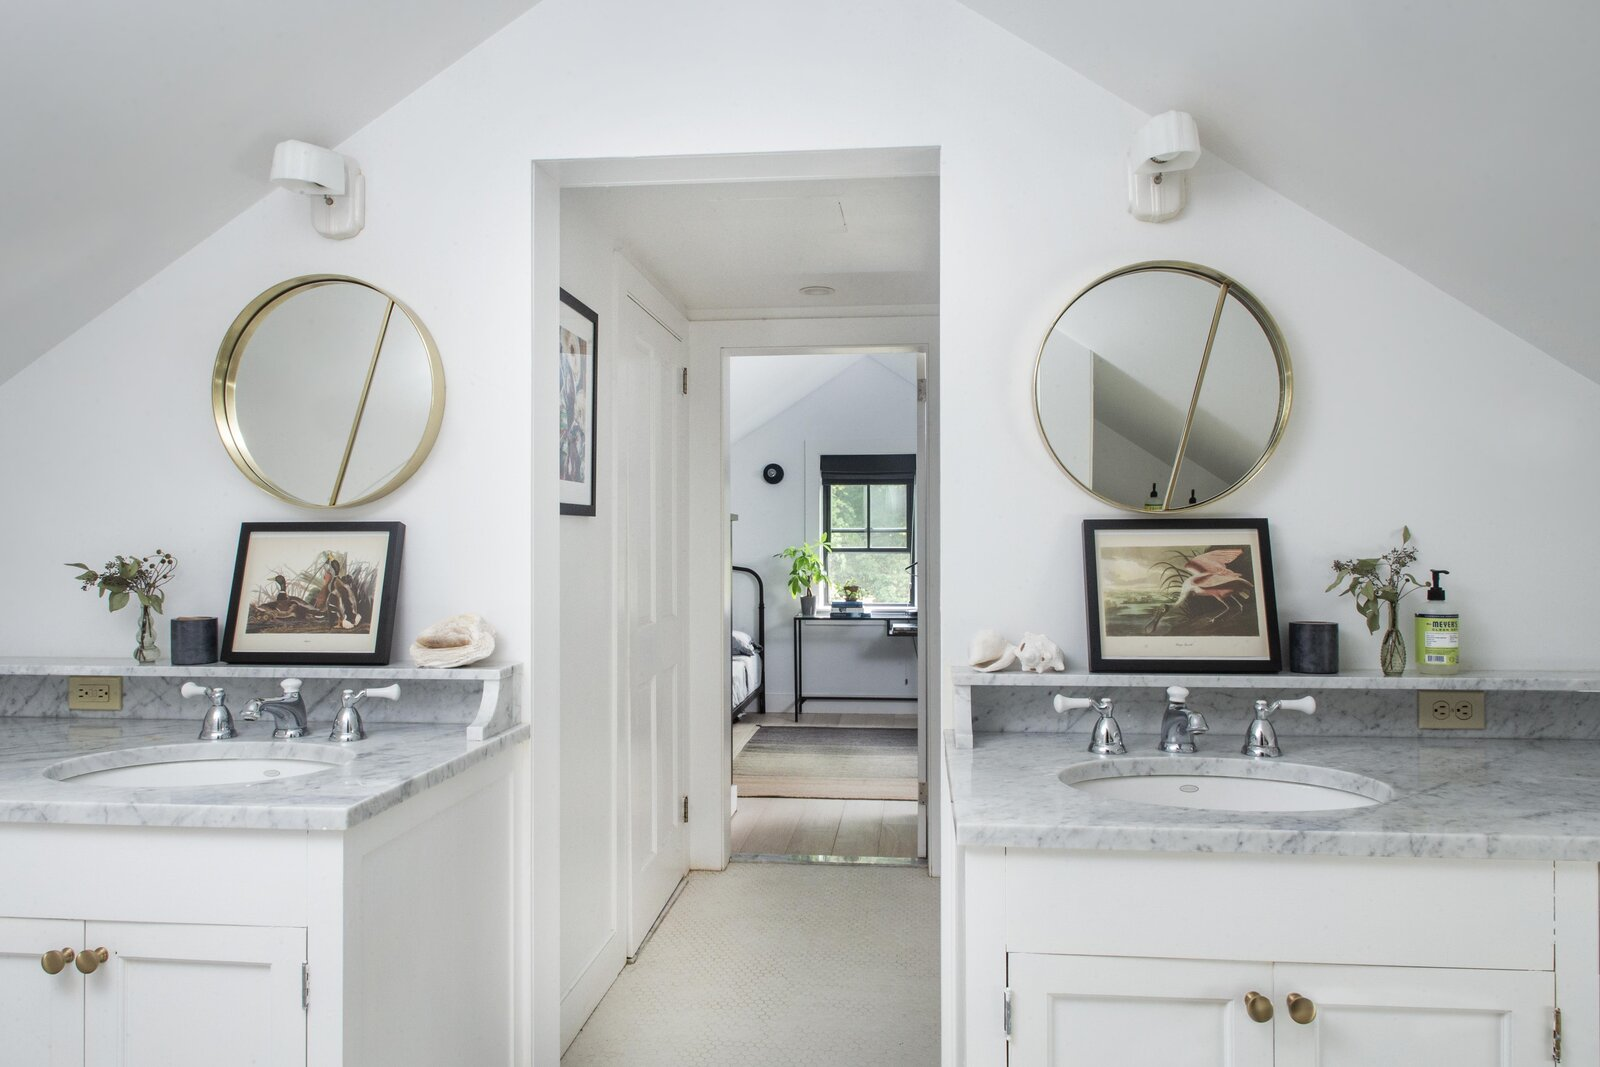 The opposite side of the bathroom features matching vanities and a central hallway leading to a bedroom in the back.  Photo 8 of 14 in For $795K, This 1865 Greek Revival Farmhouse Could Be Your Escape From New York